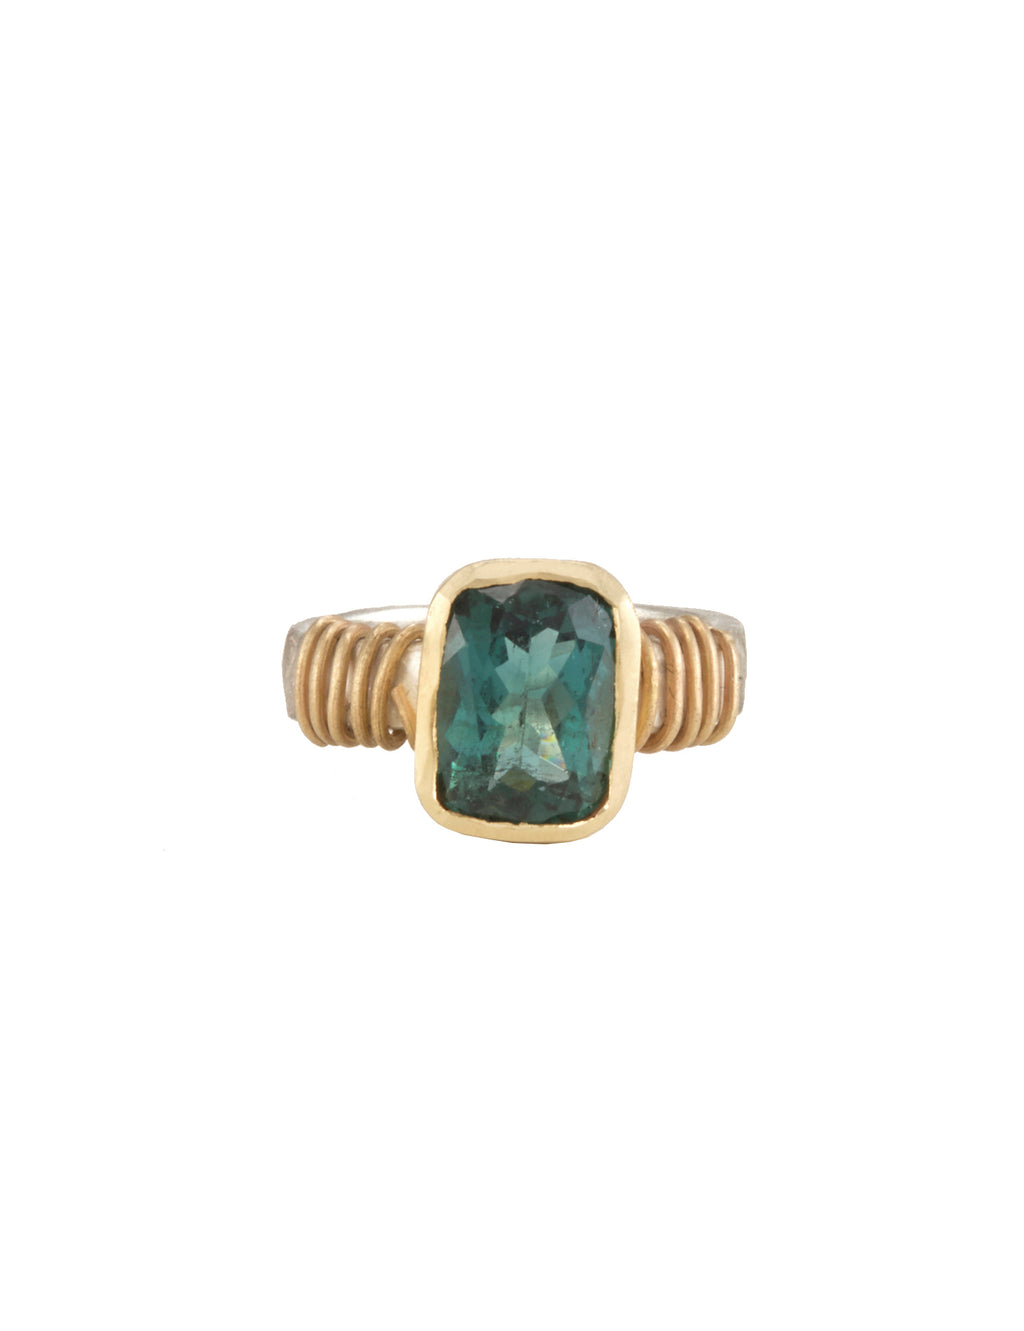 Tsutsumi Green Tourmaline Ring